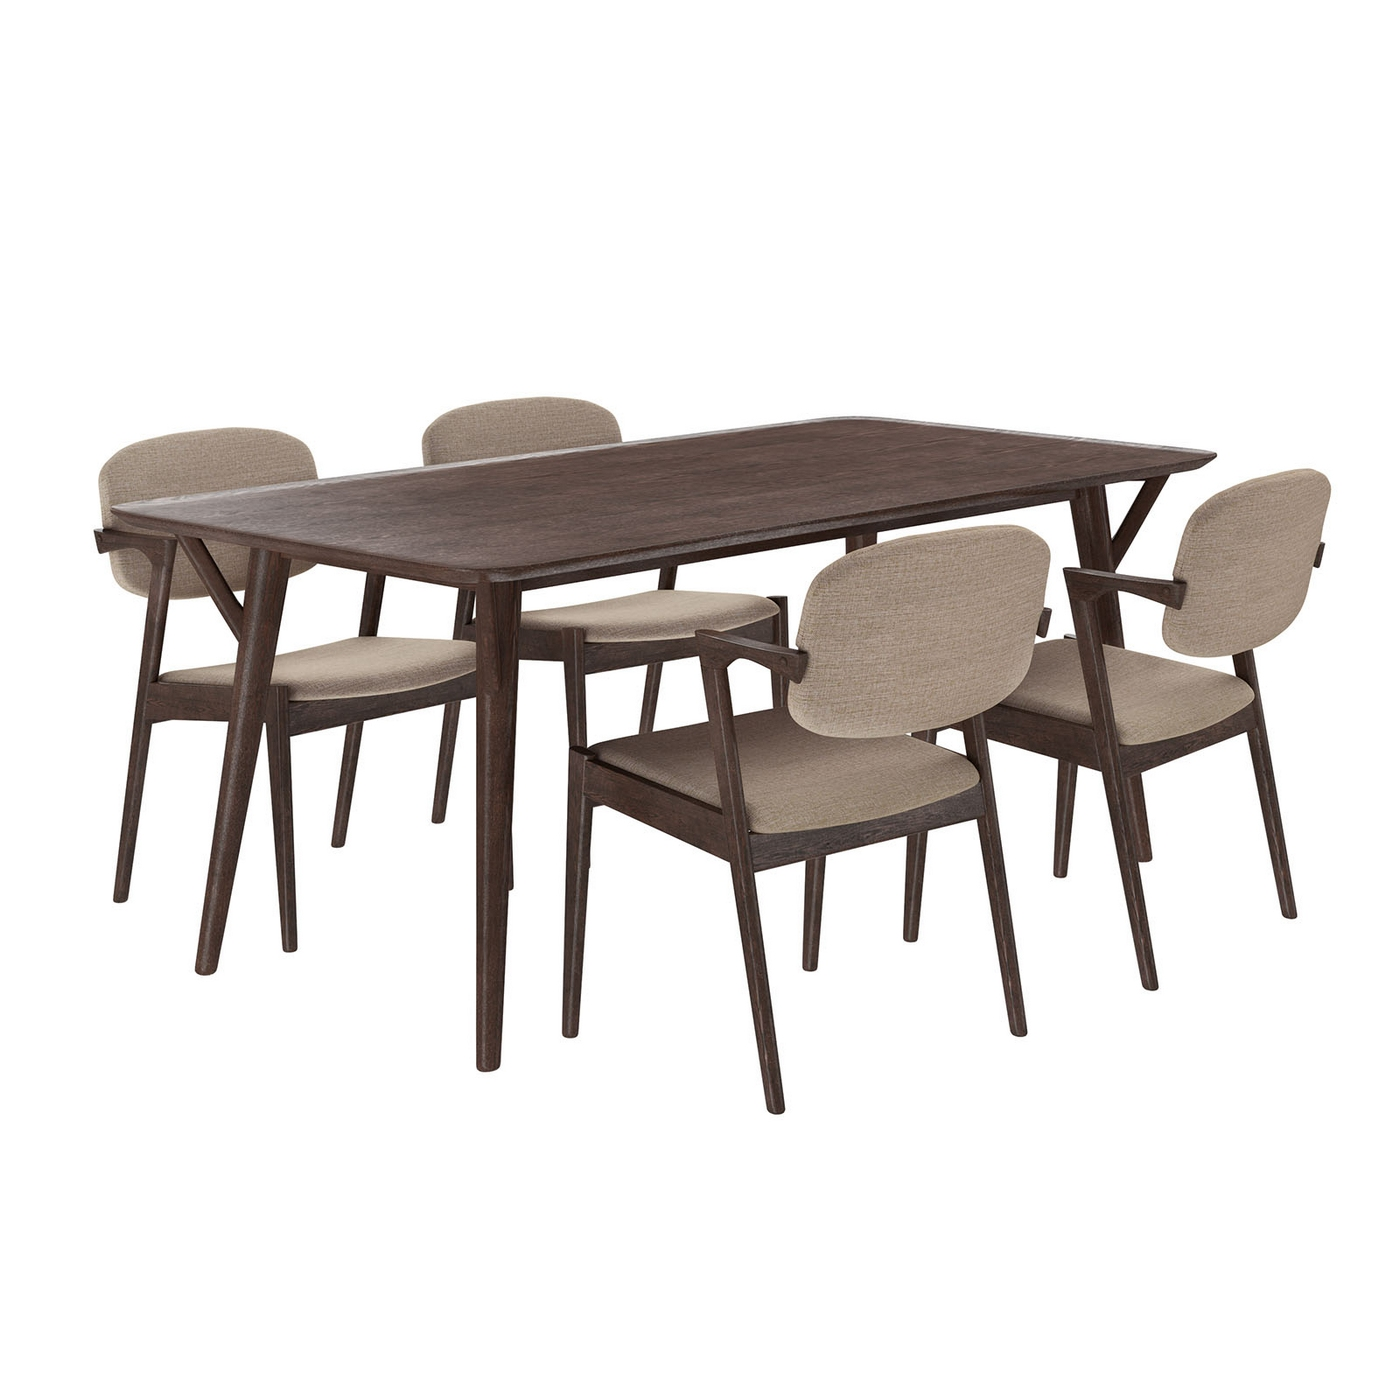 Mid century modern 5pc wooden dining set with upholstered for Modern dining chairs philippines